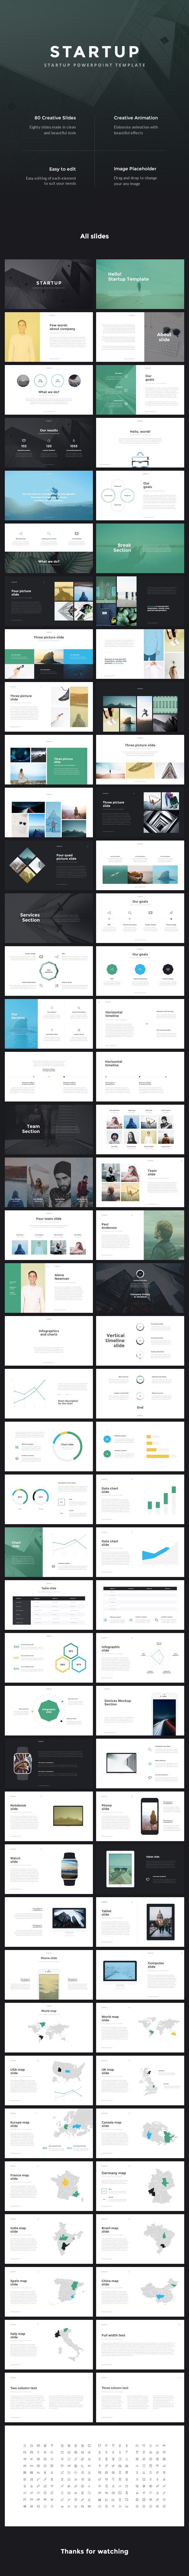 Startup  Pitch Deck PowerPoint Template — Powerpoint PPTX #ecomerce #biz • Download ➝ https://graphicriver.net/item/startup-pitch-deck-powerpoint-template/19870188?ref=pxcr